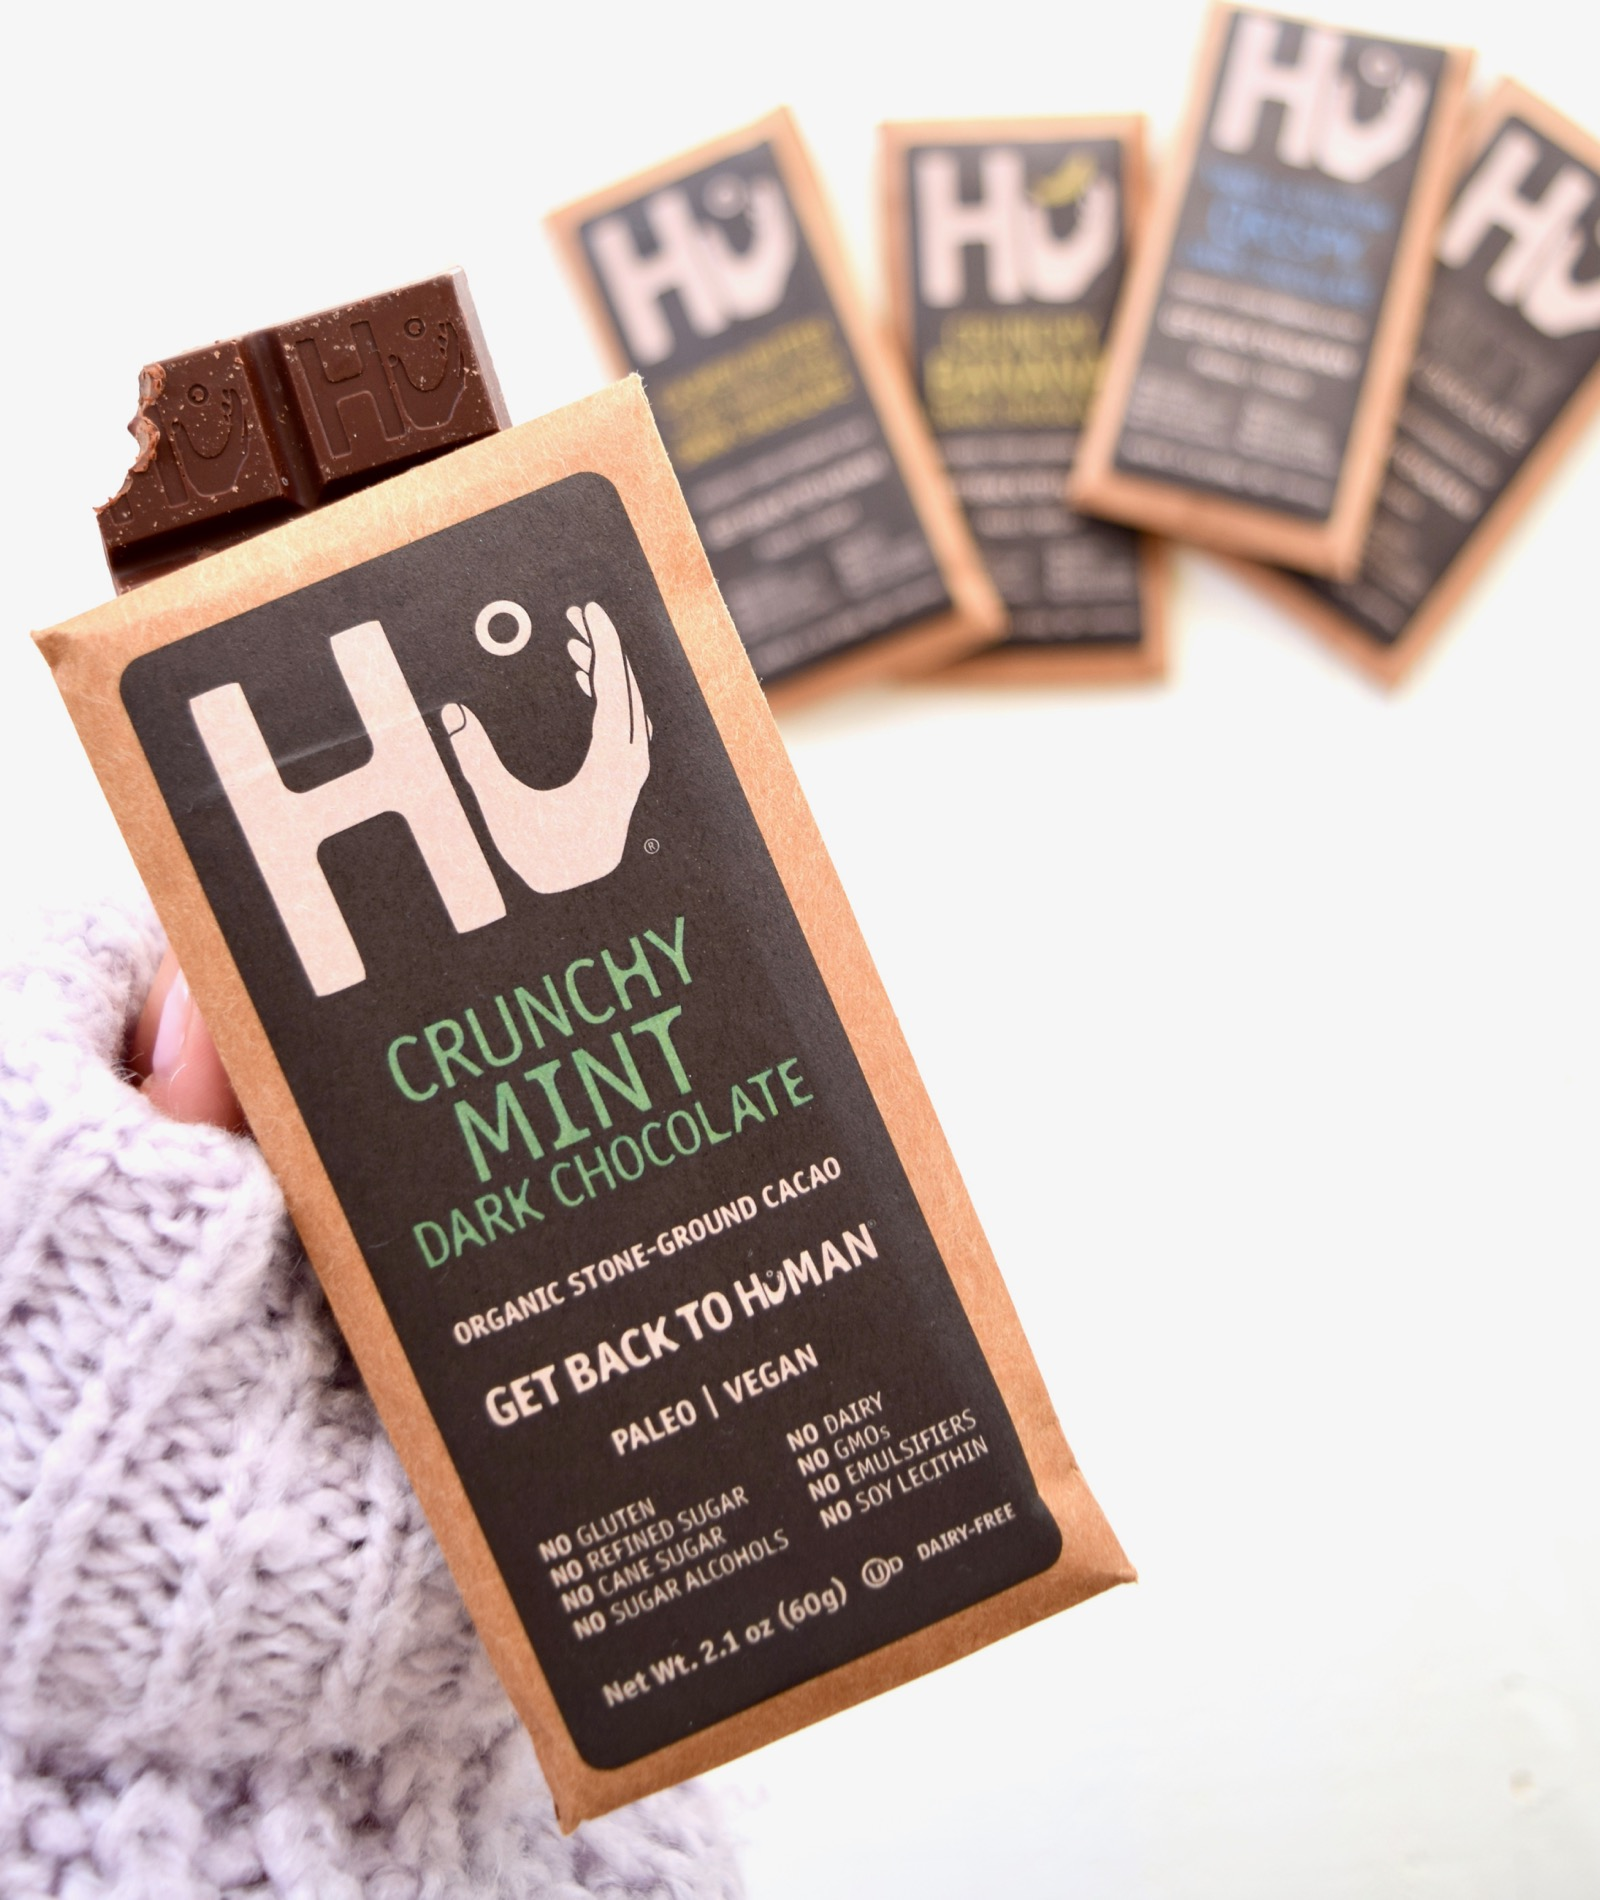 Hu Kitchen Chocolate Bar Review